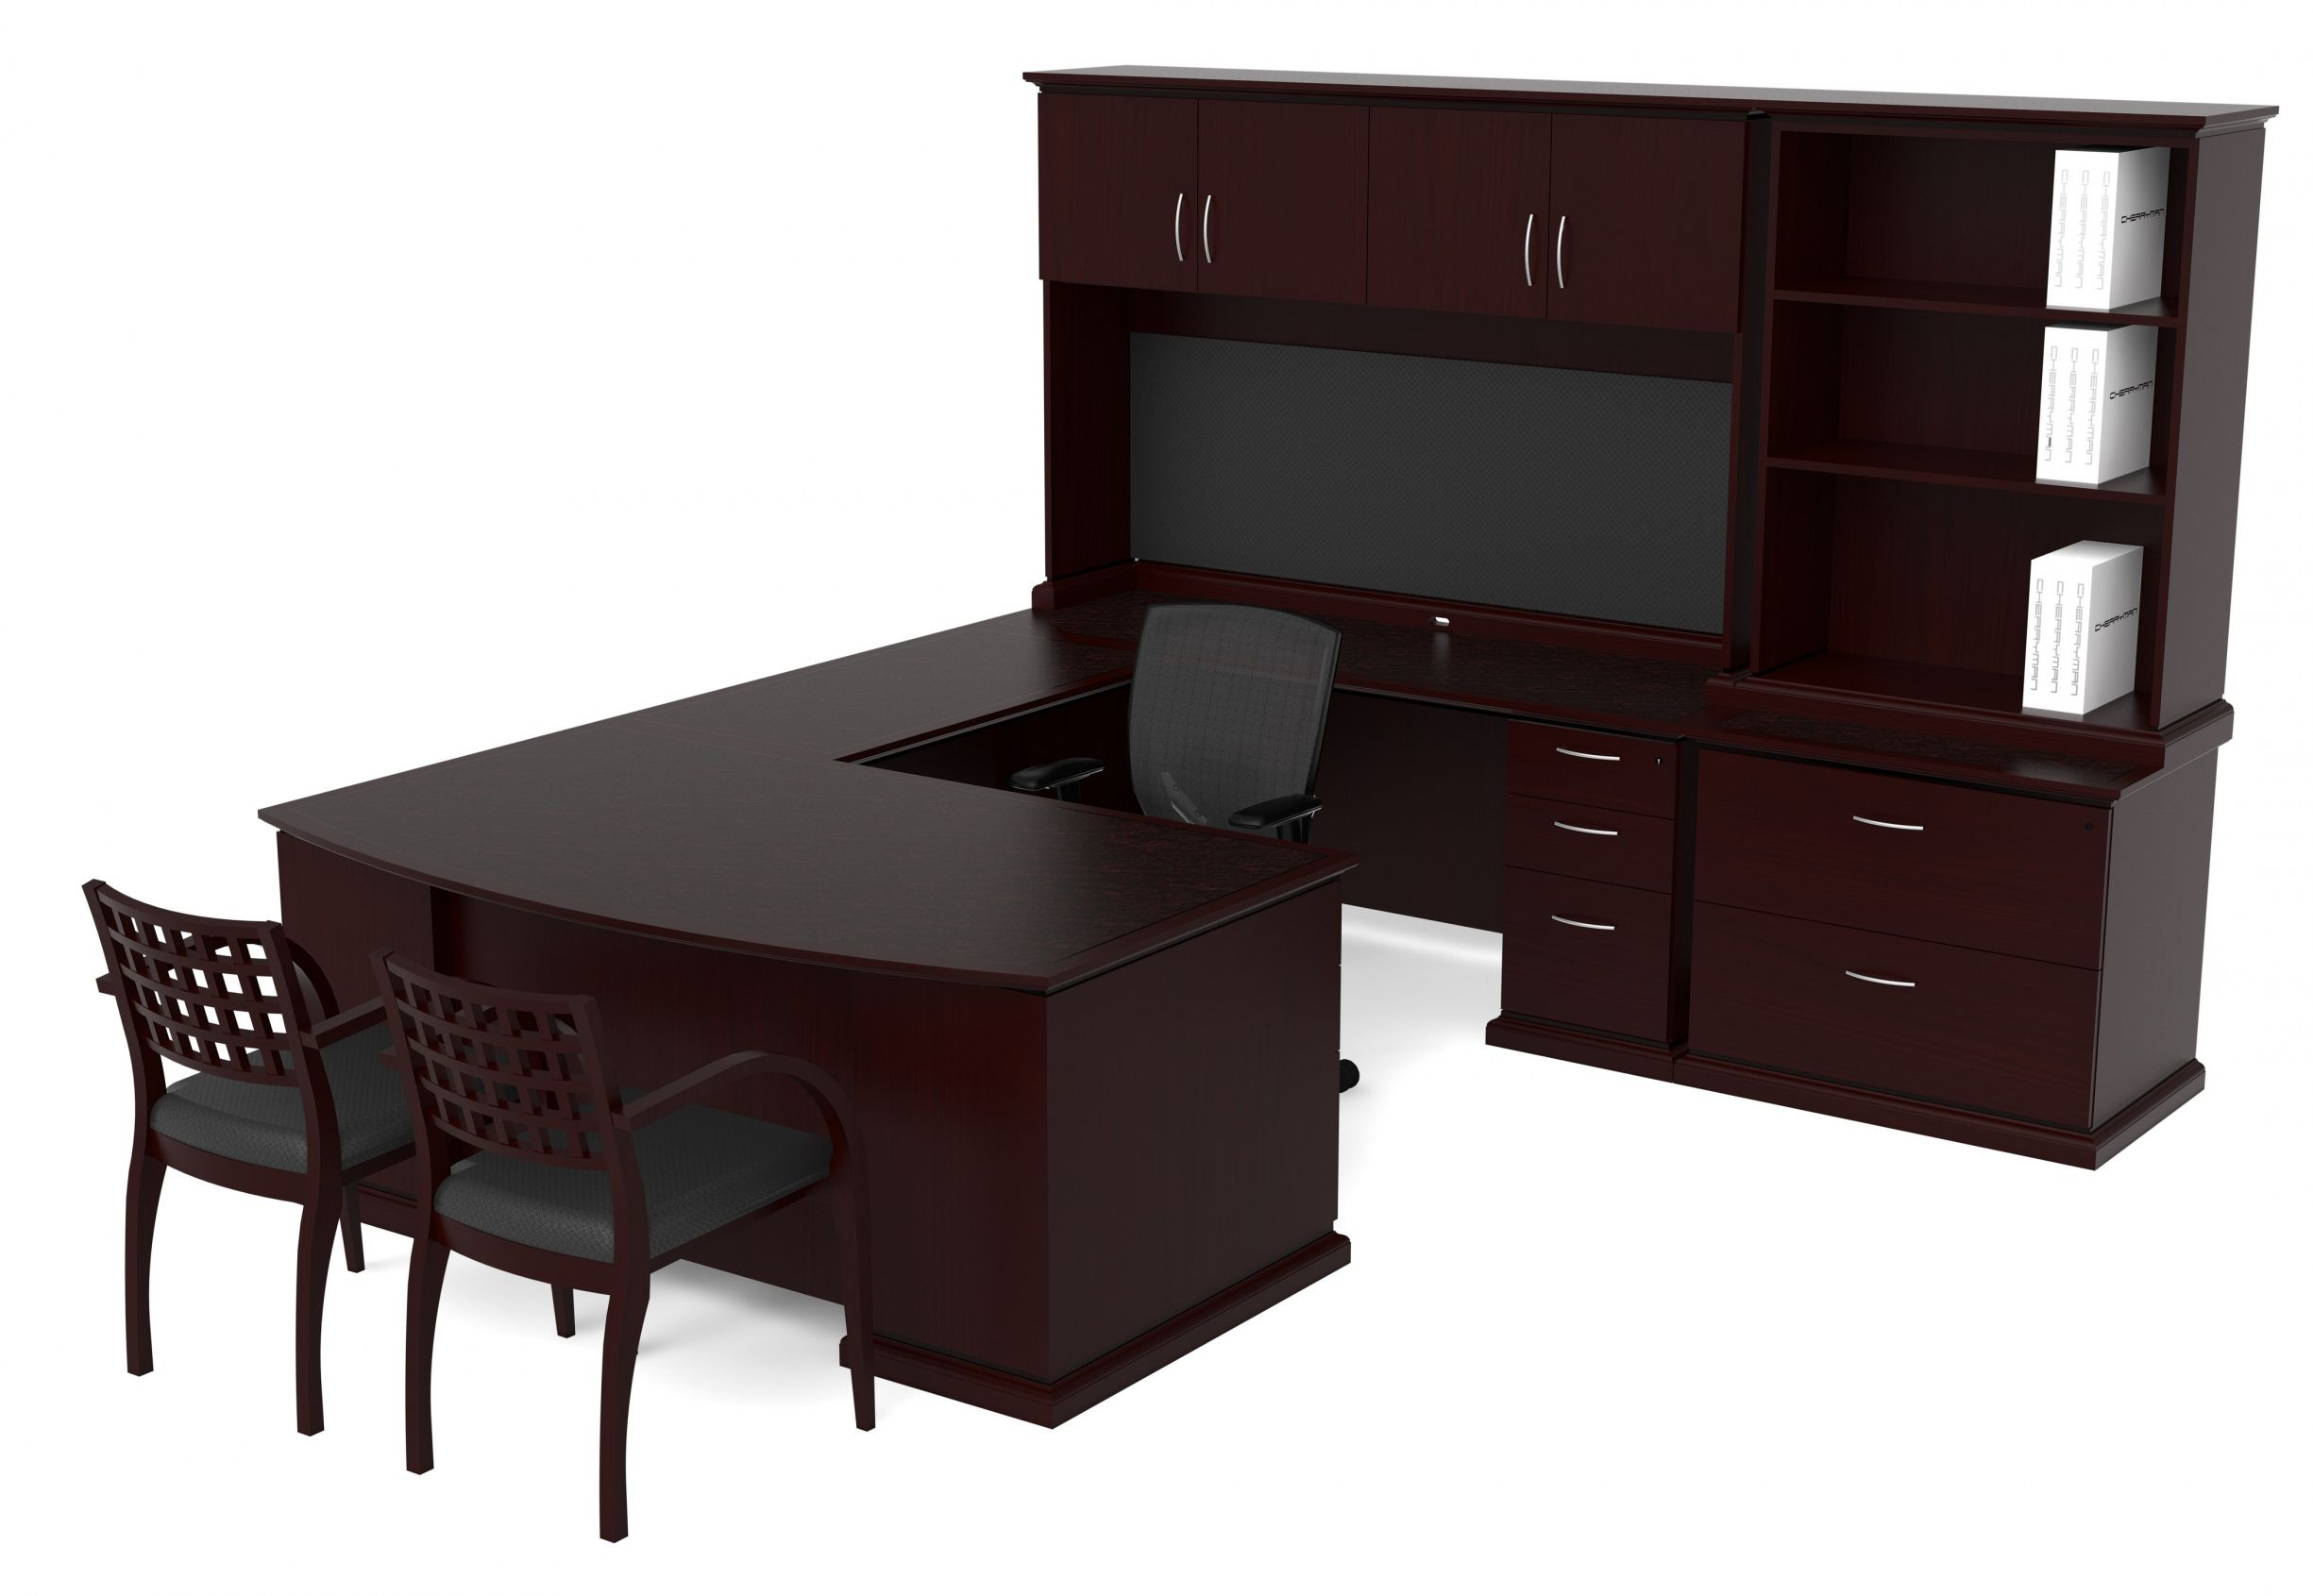 Pin By Neby On Home And Garden Pinterest Desk Desk Hutch And